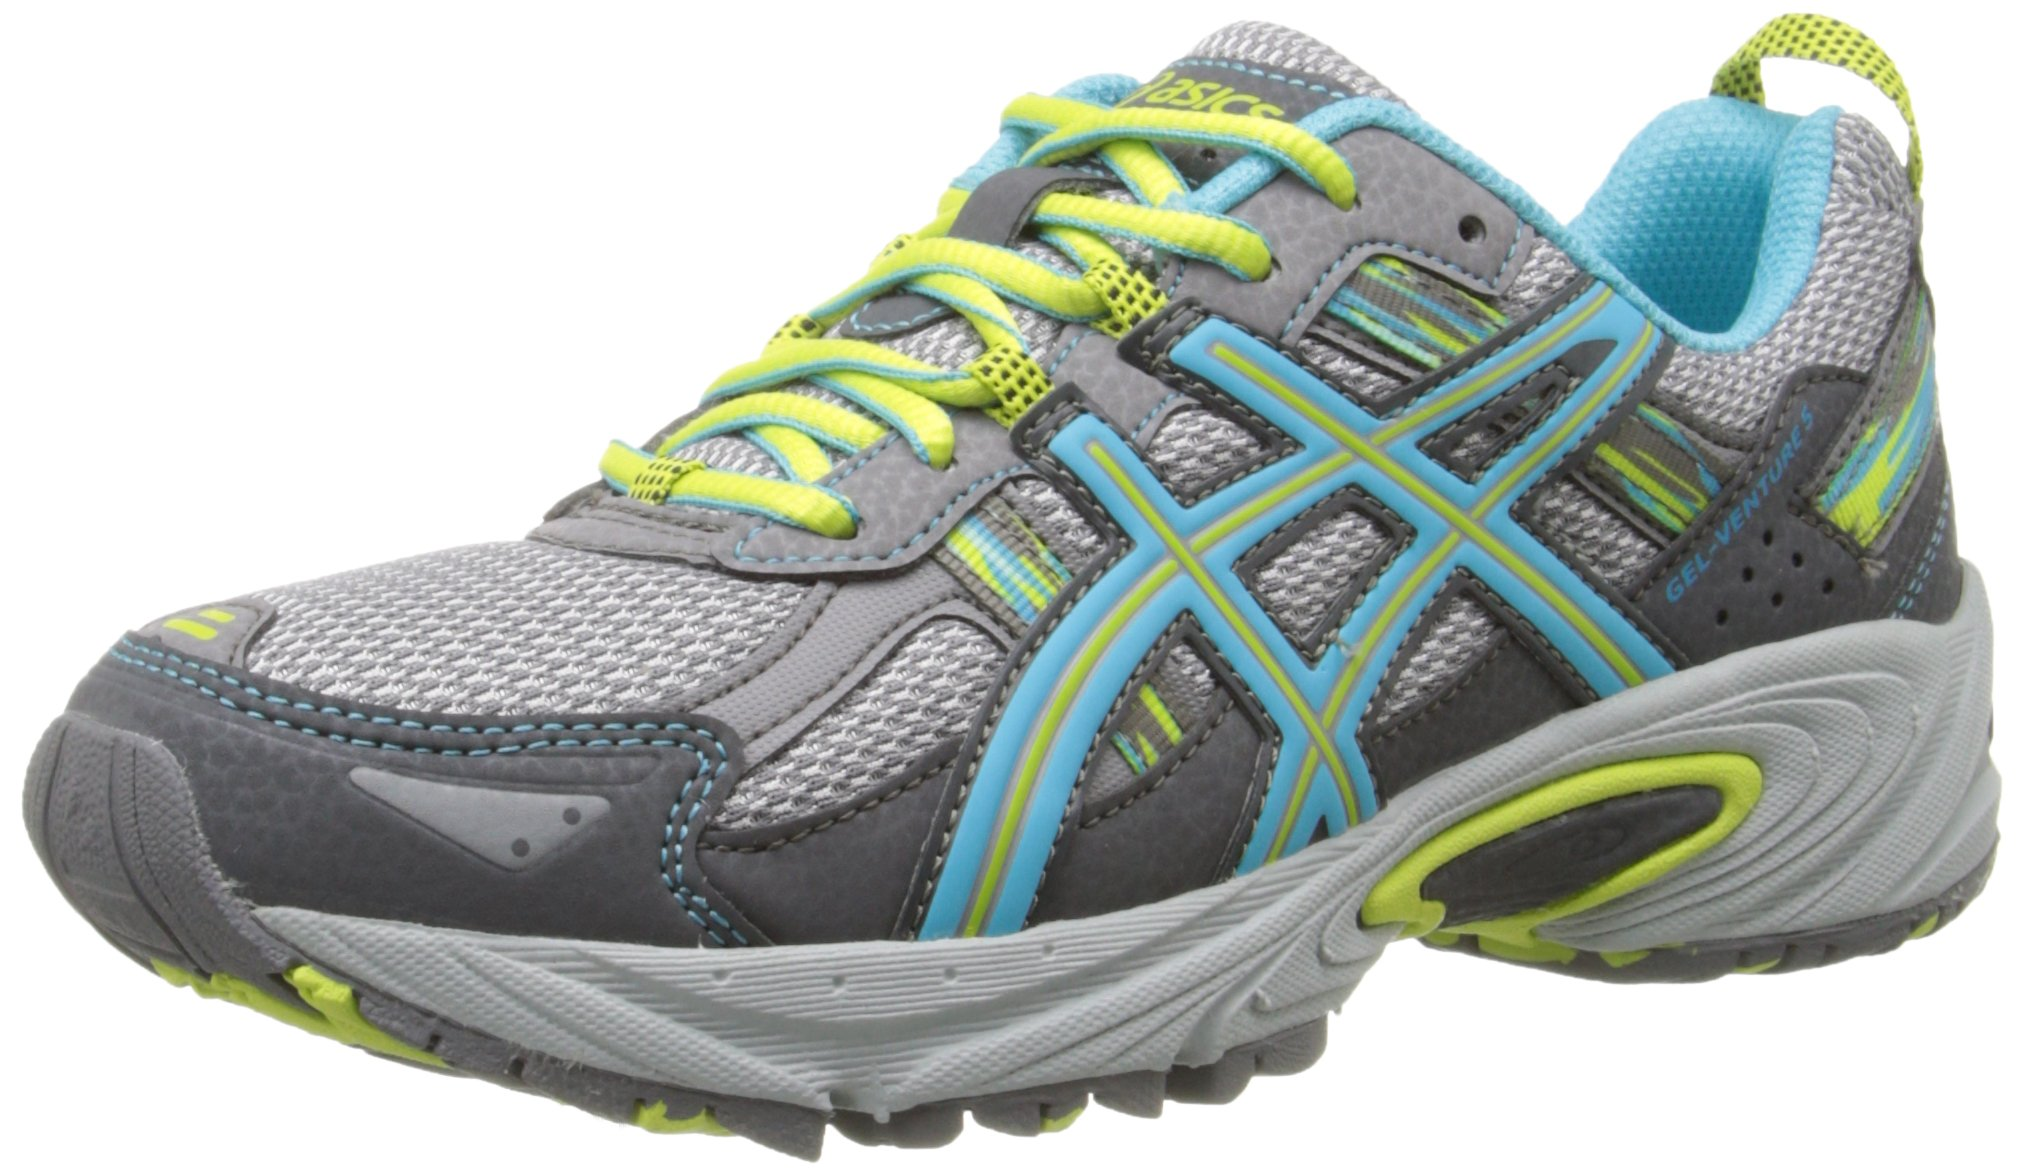 ASICS Women's Gel-Venture 5 Running Shoe, Silver Grey/Turquoise/Lime Punch, 9 M US by ASICS